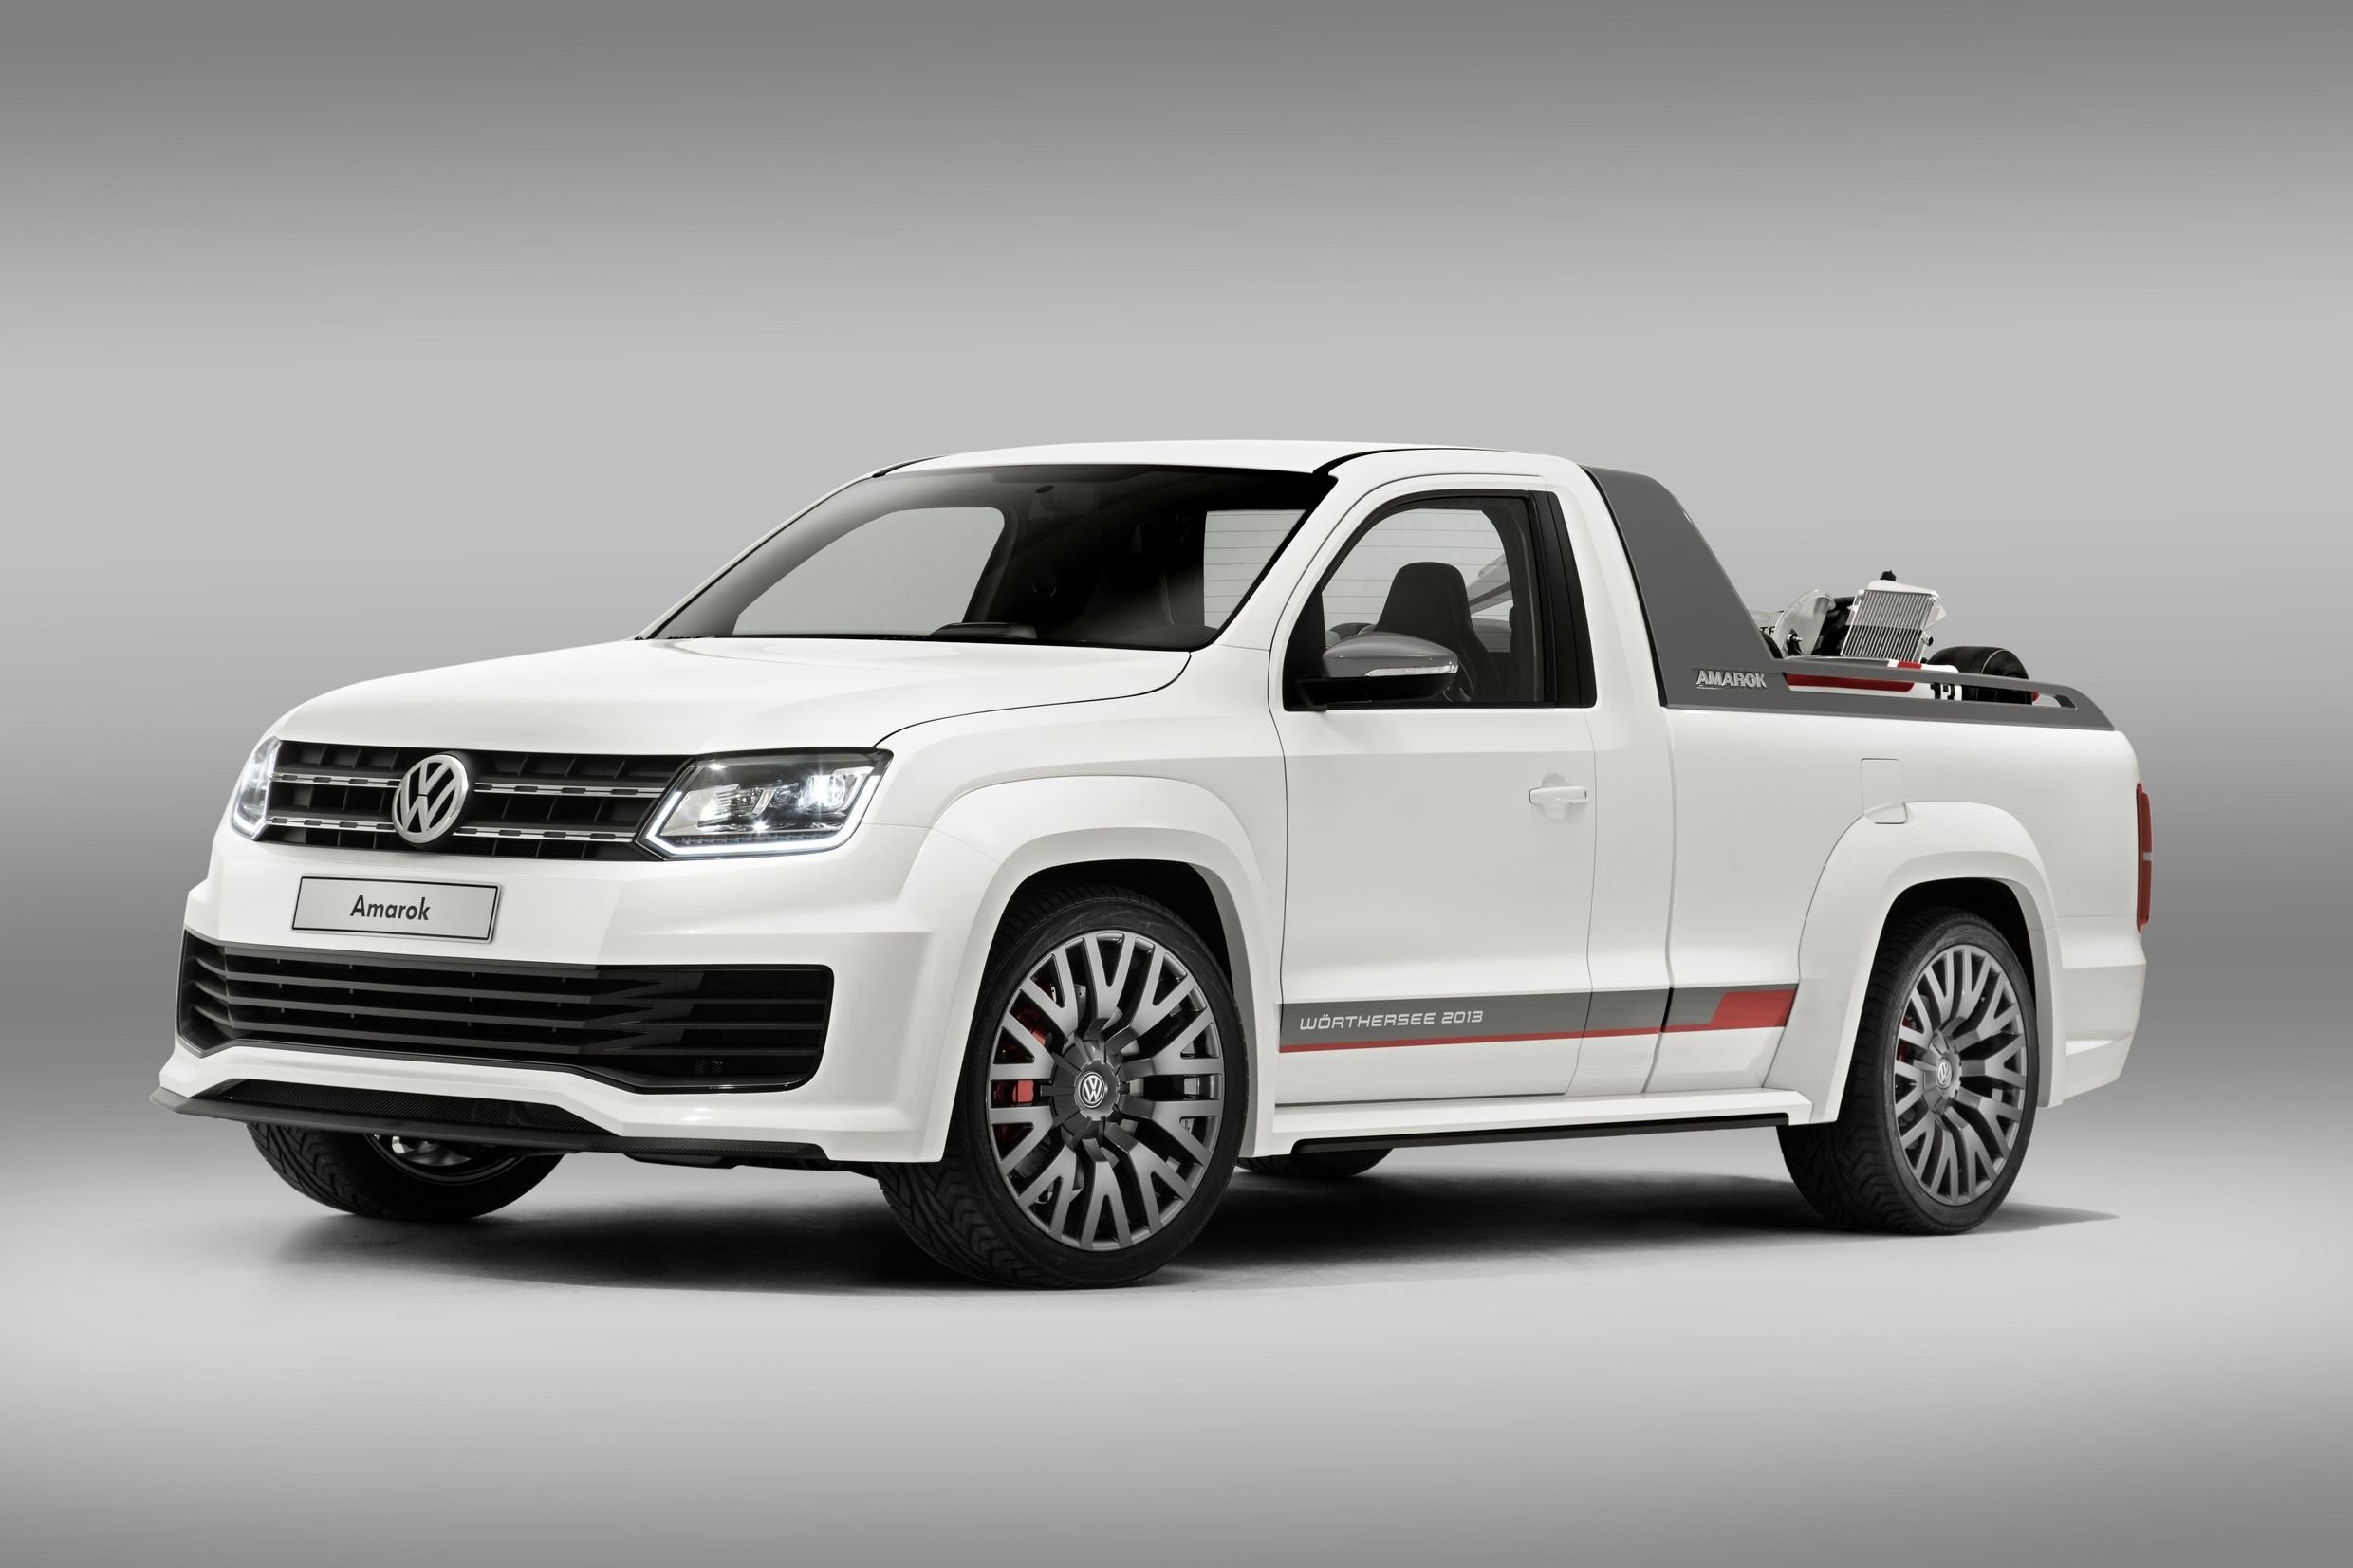 2017 volkswagen amarok facelift spied in sweden autoevolution. Black Bedroom Furniture Sets. Home Design Ideas